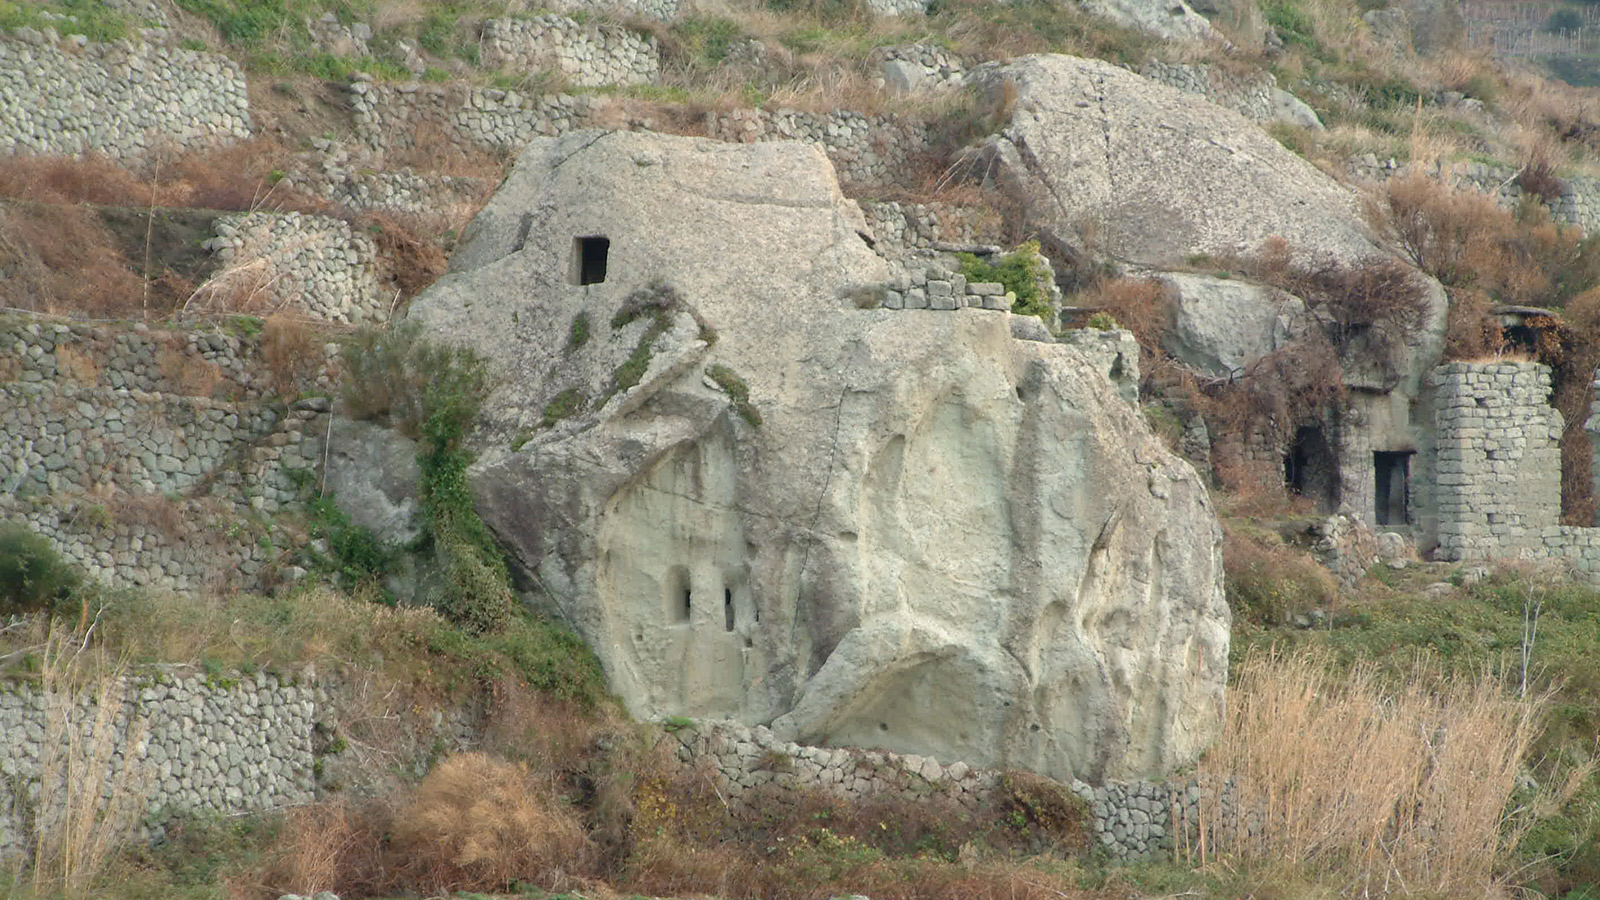 FROM SERRARA TO THE MUD: through the stone houses